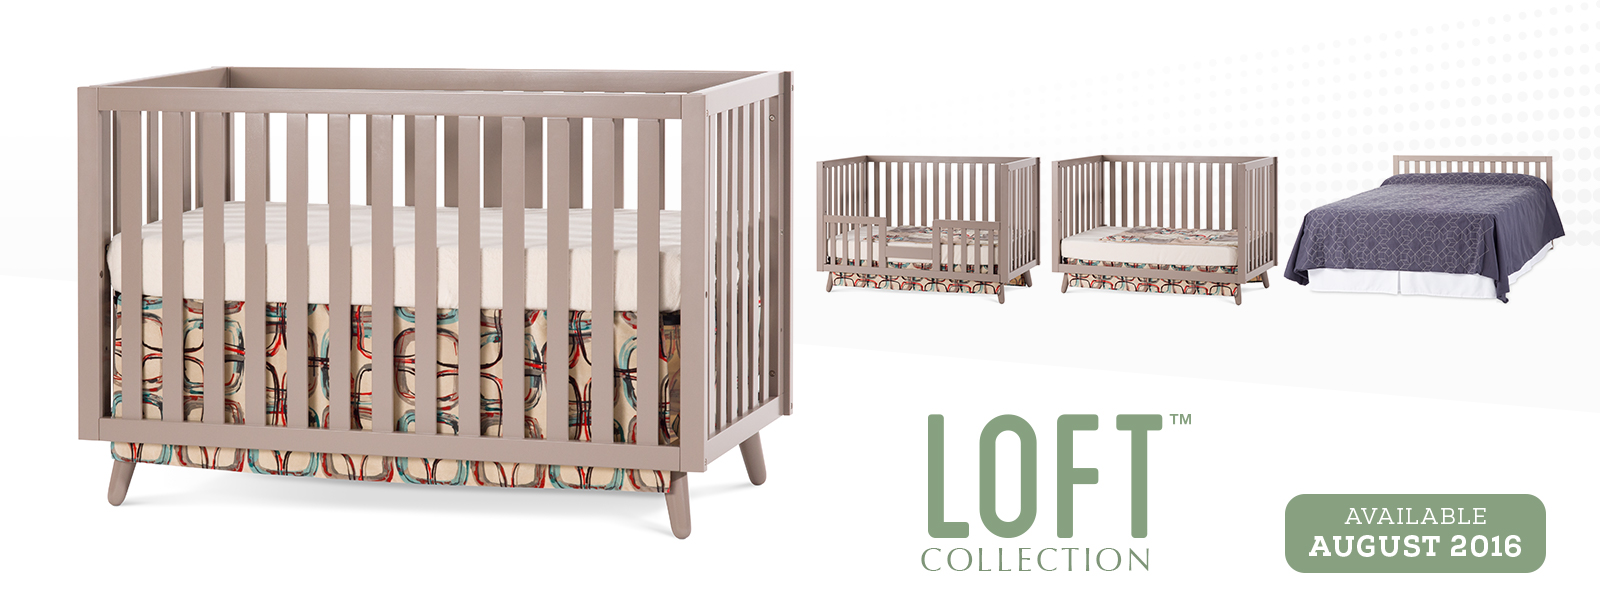 Loft Collection available in August!